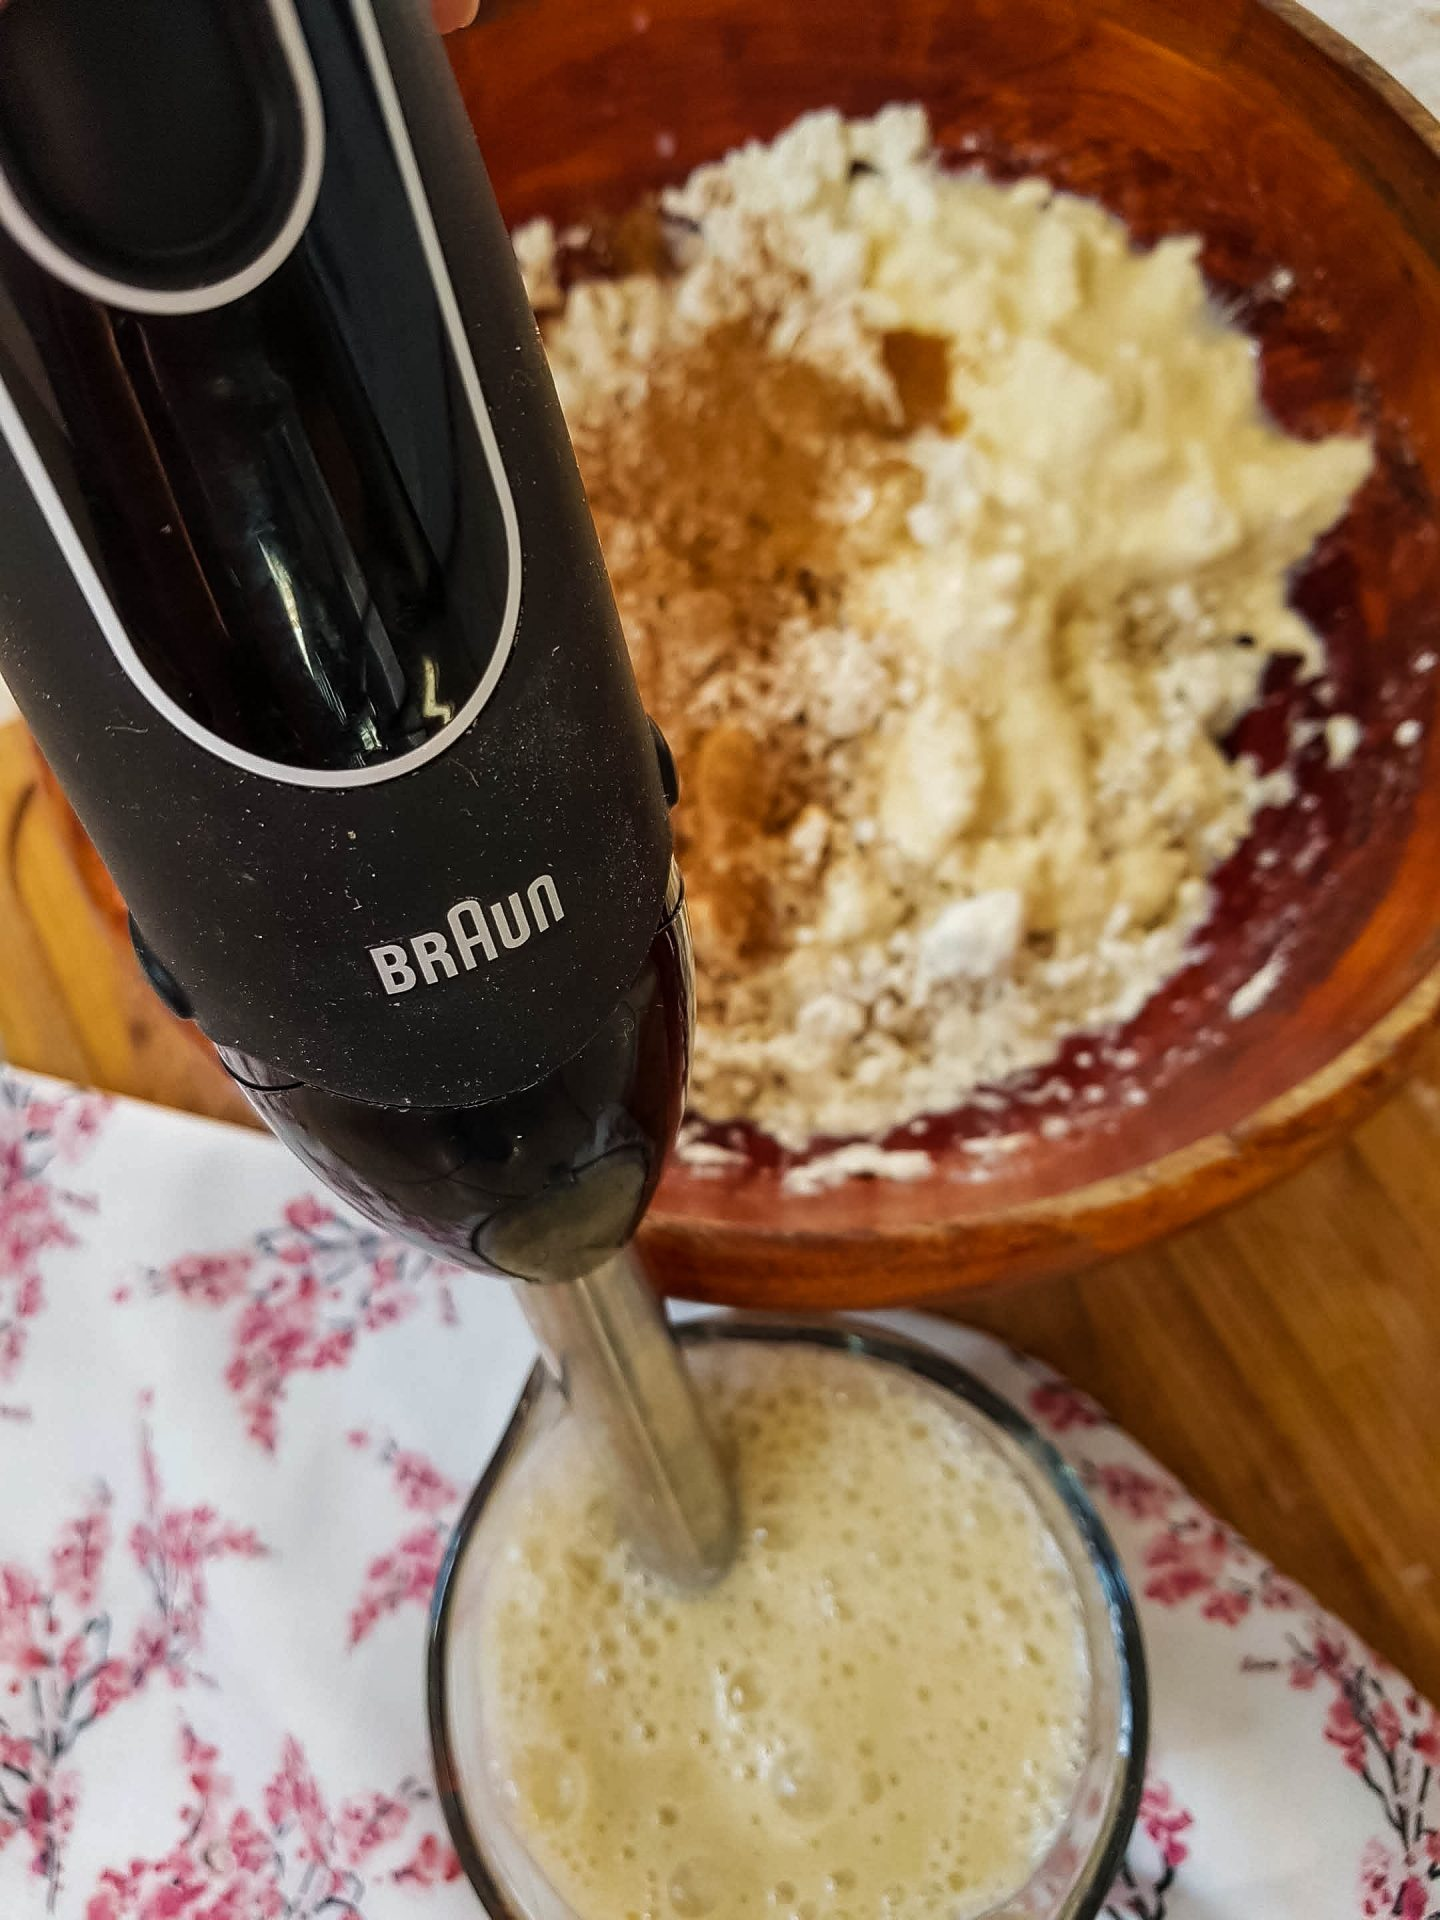 immersion blender to make oatmeal bake